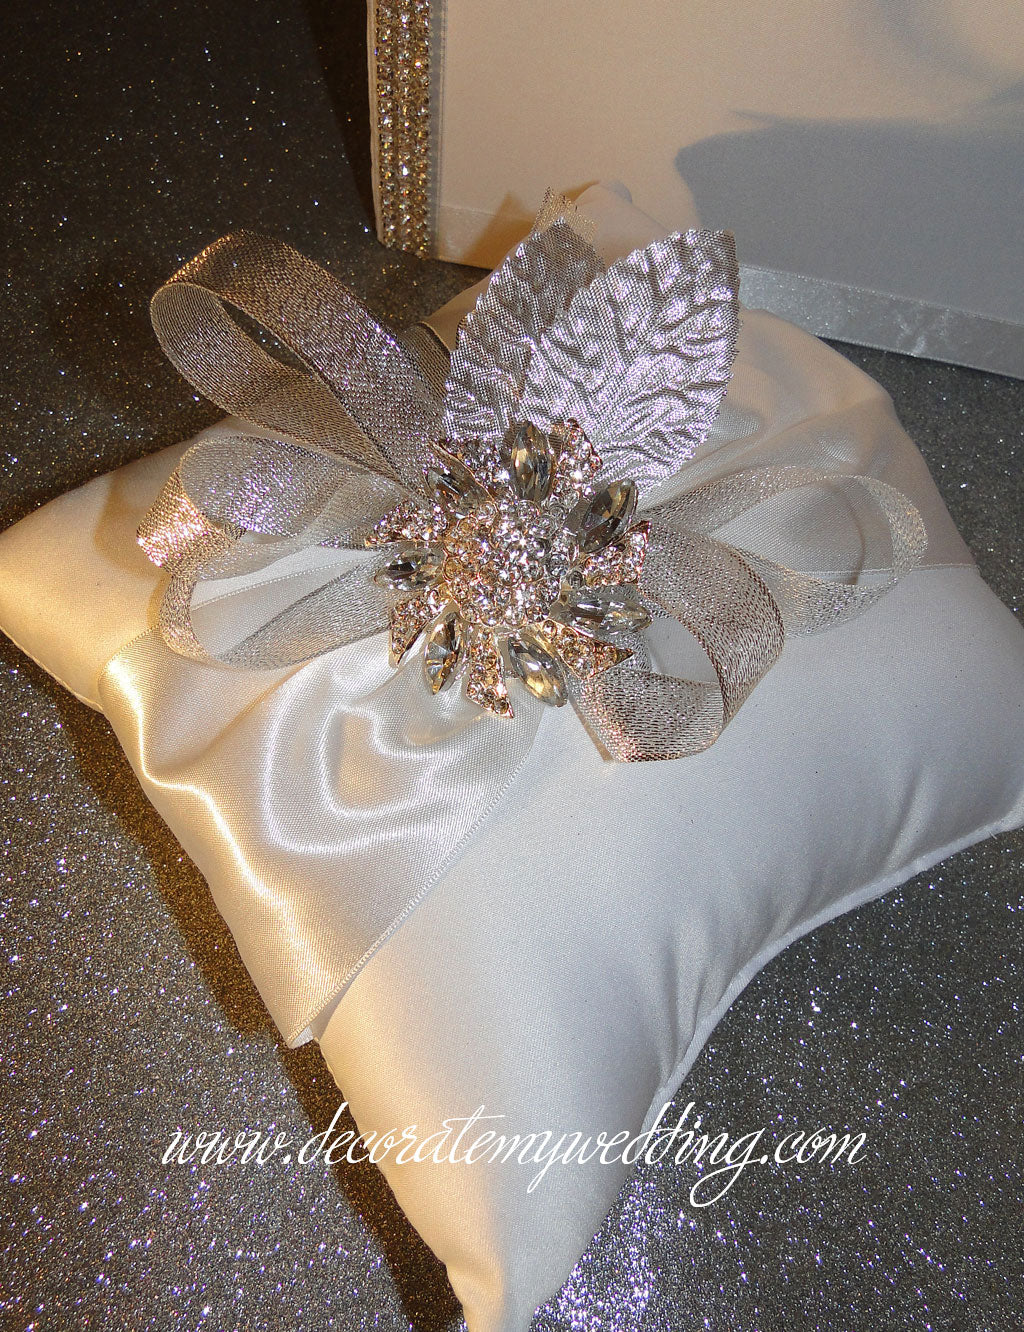 The wedding ring pillow is trimmed with silver ribbons and a clear rhinestone brooch.